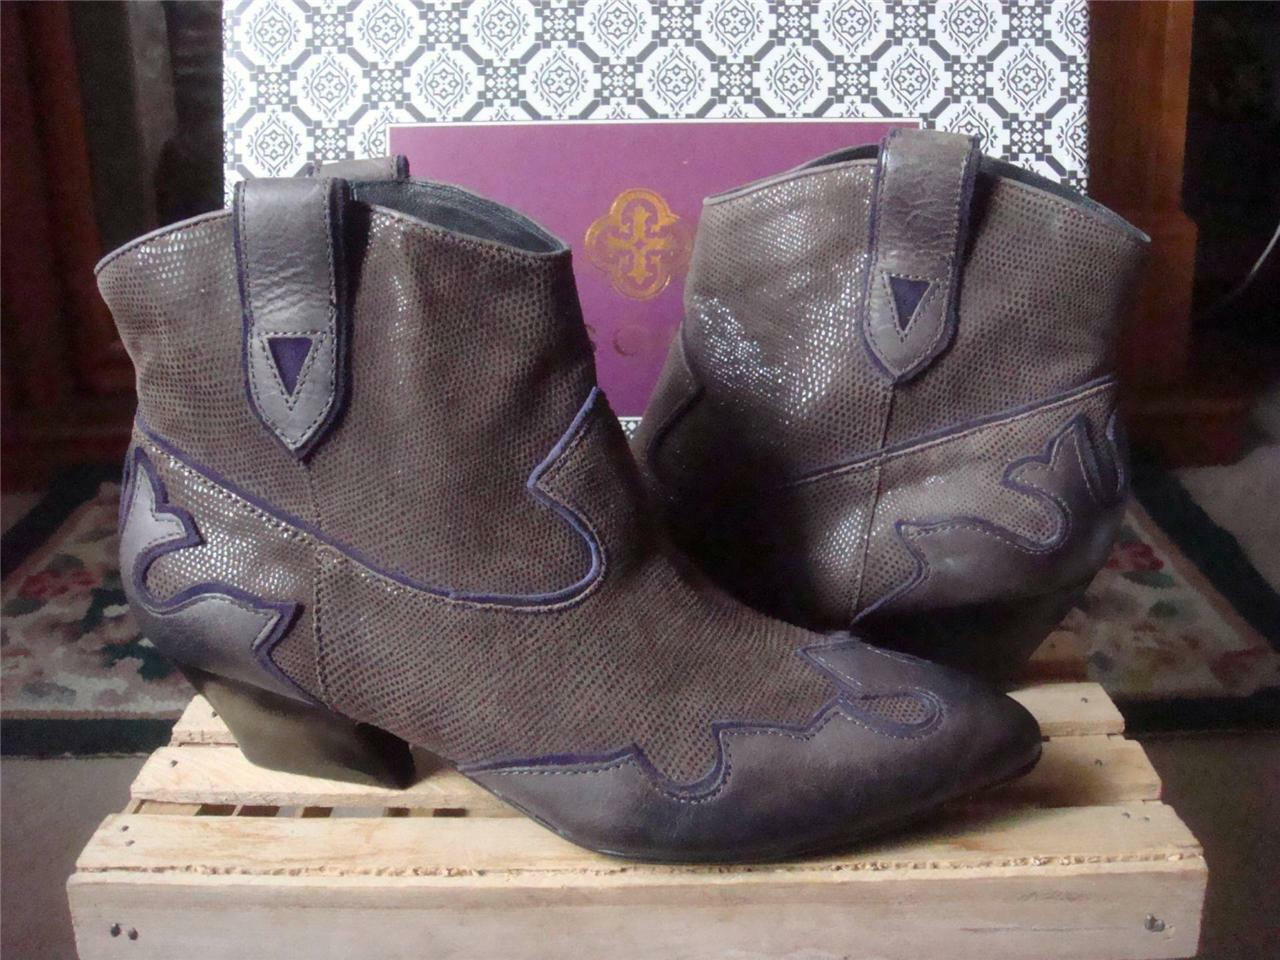 NIB ISOLA ODIN TAUPE BROWN LEATHER & SUEDE FASHION WESTERN ANKLE BOOTSSZ 8.5 8